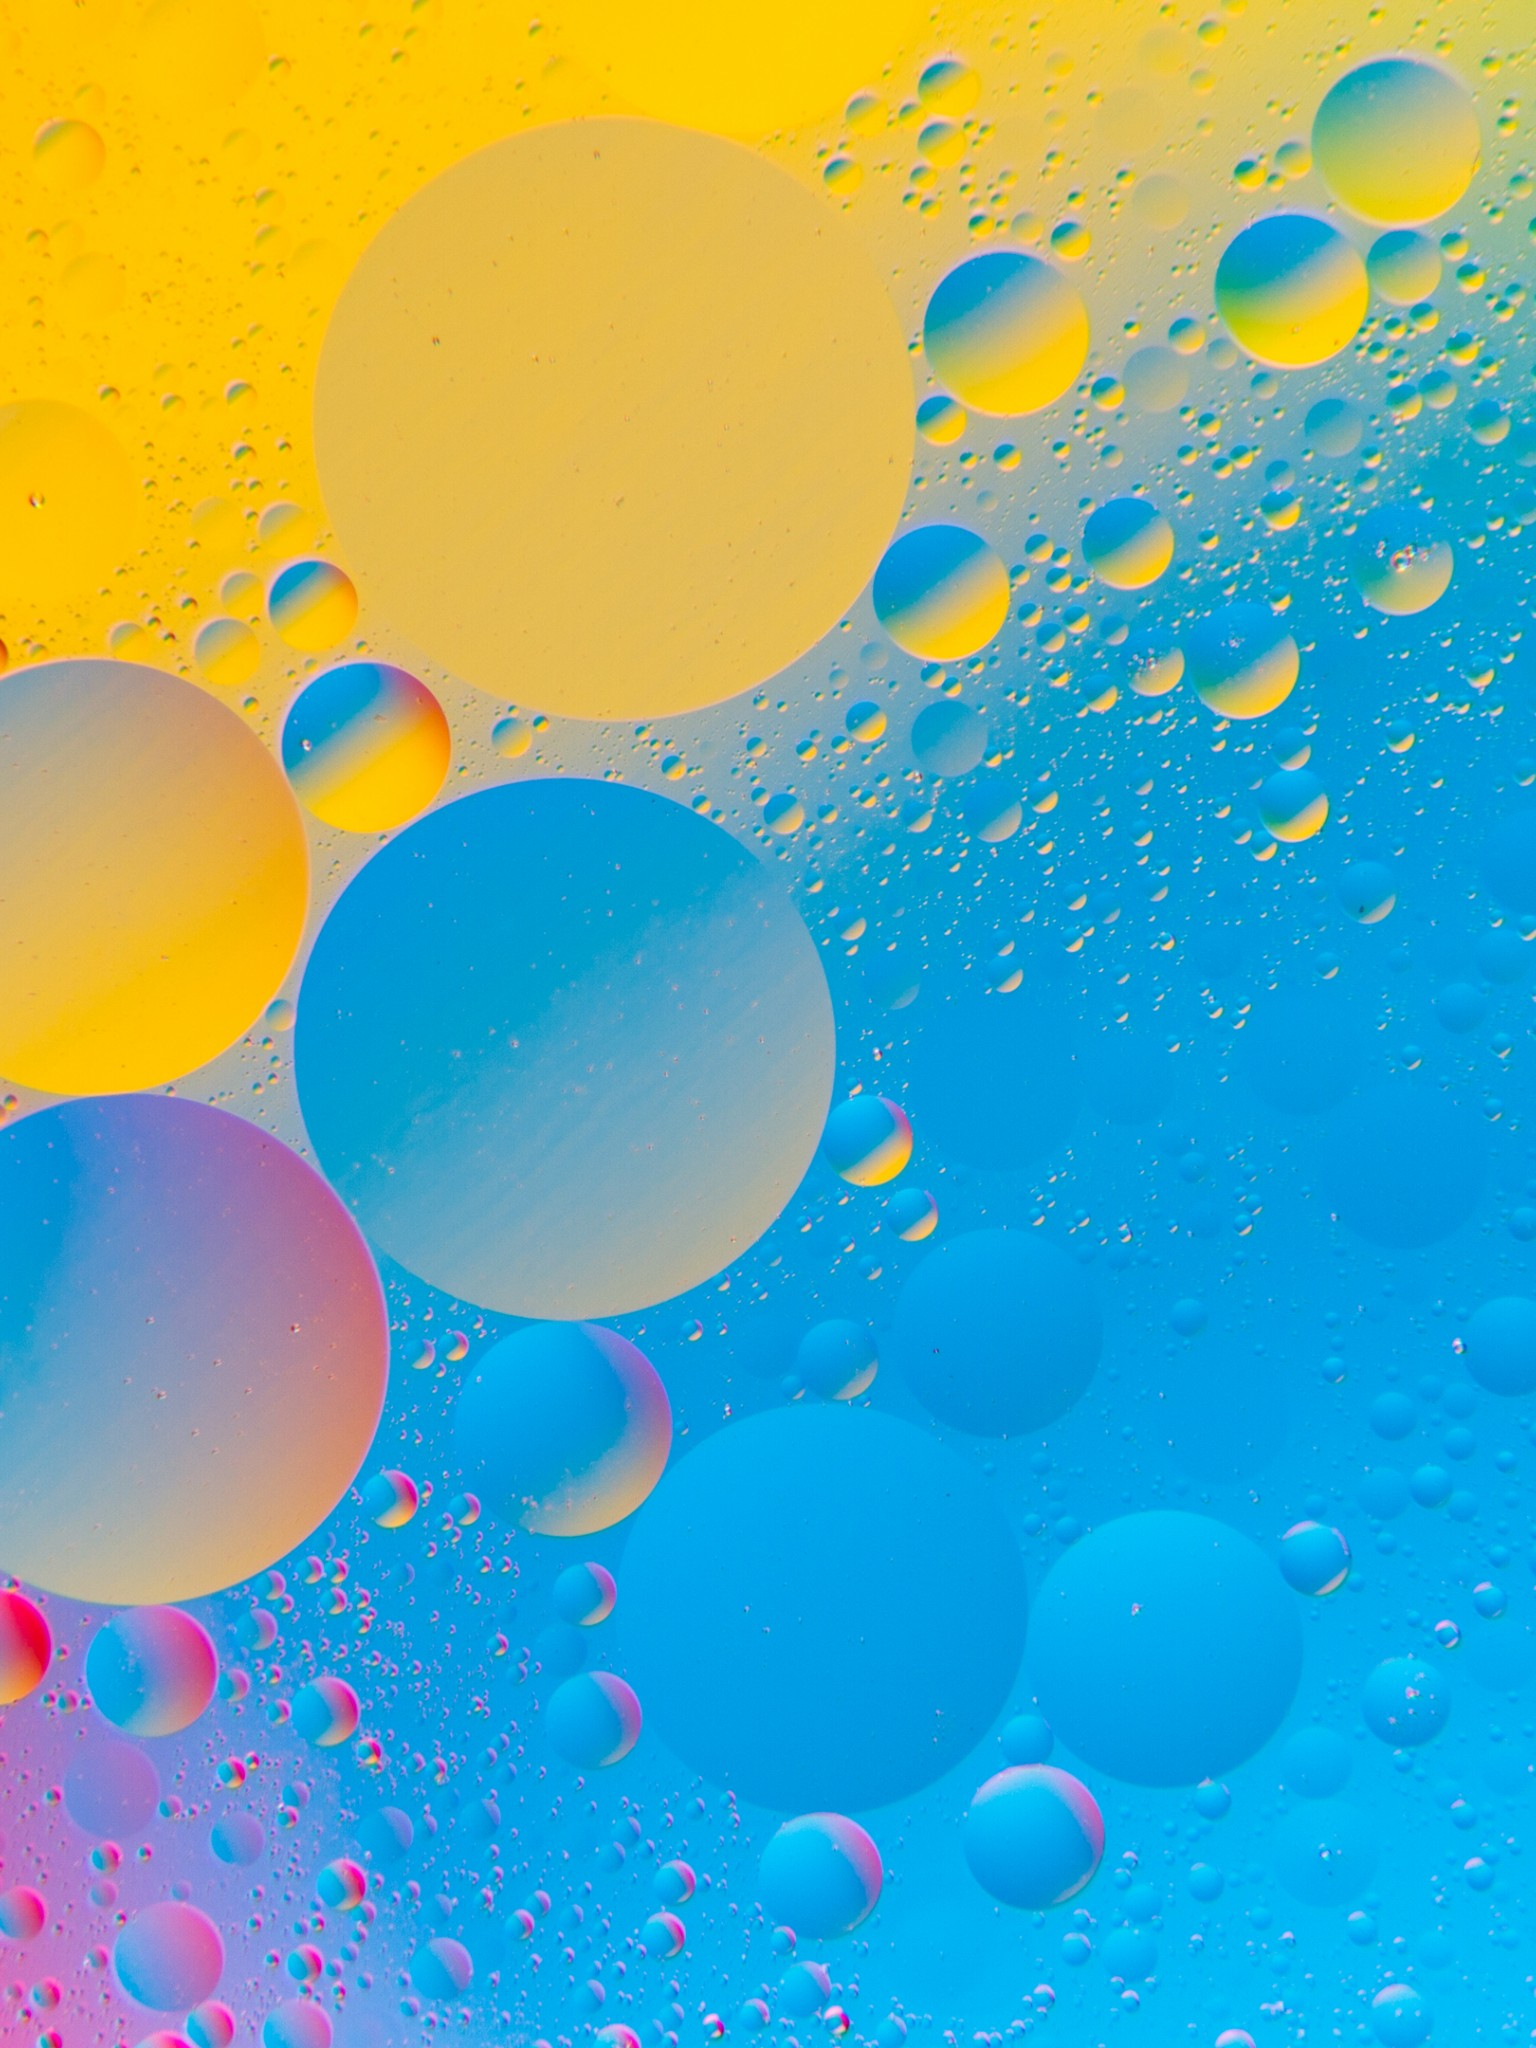 Colourful Bubbles 4k Hd Abstract Wallpaper Retina Ipad Hd